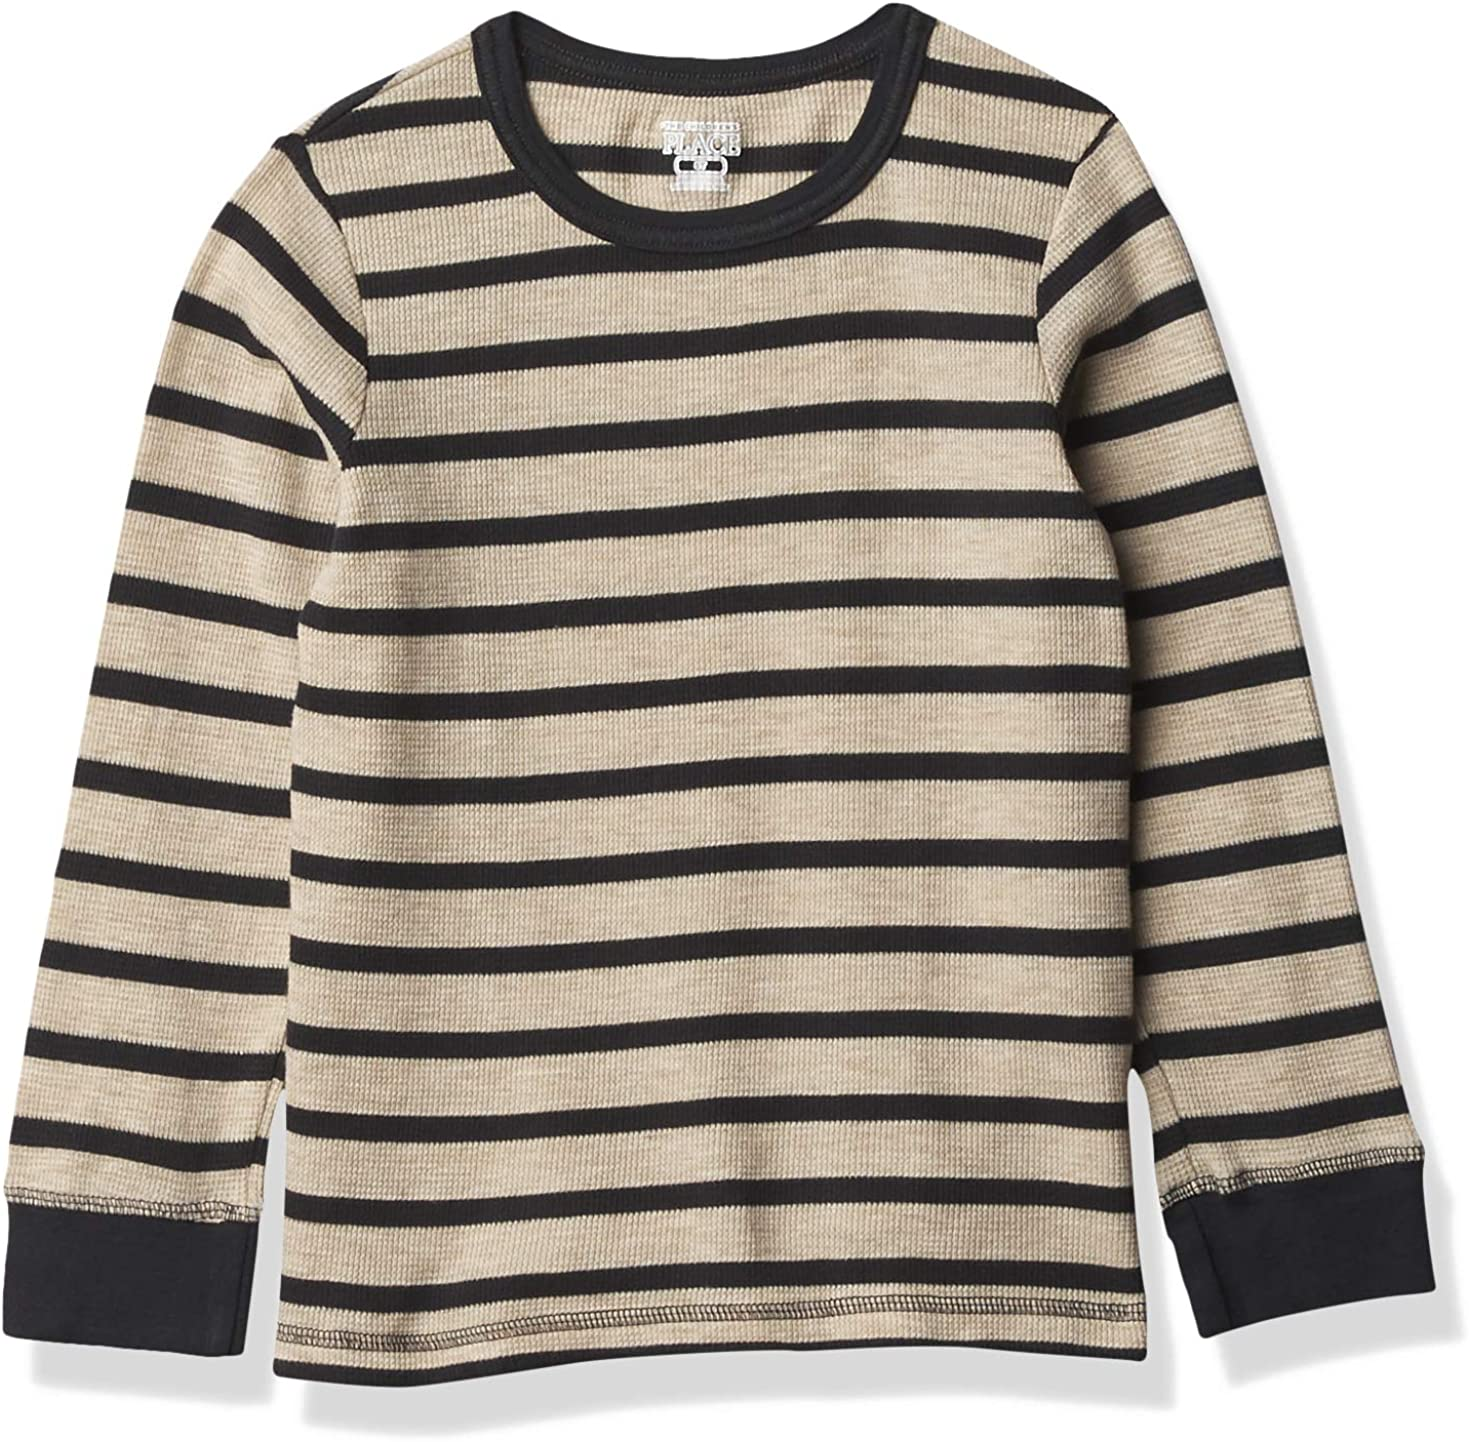 The Children's Place Boys' Toddler Striped Thermal Top